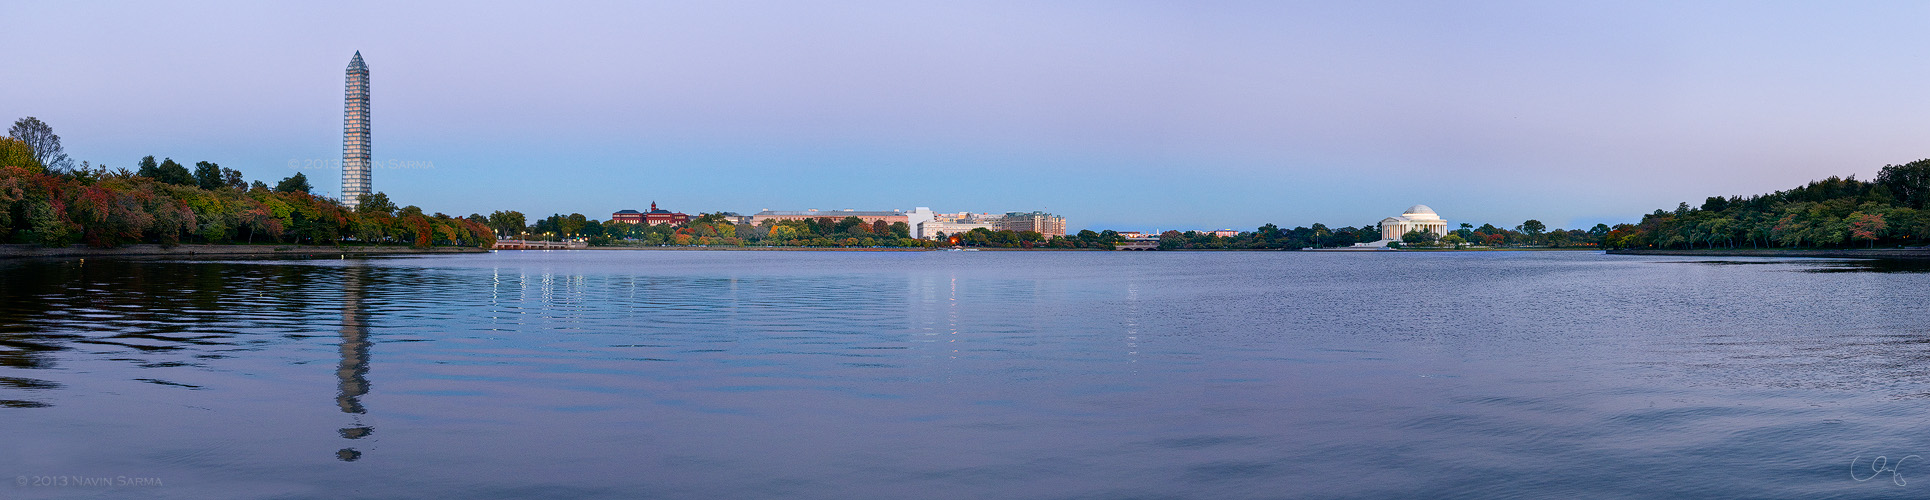 During a blue and pink sunset, fall colors start to turn at Washington, D.C.'s Tidal Basin in front of the Washington Monument and Jefferson Memorial.